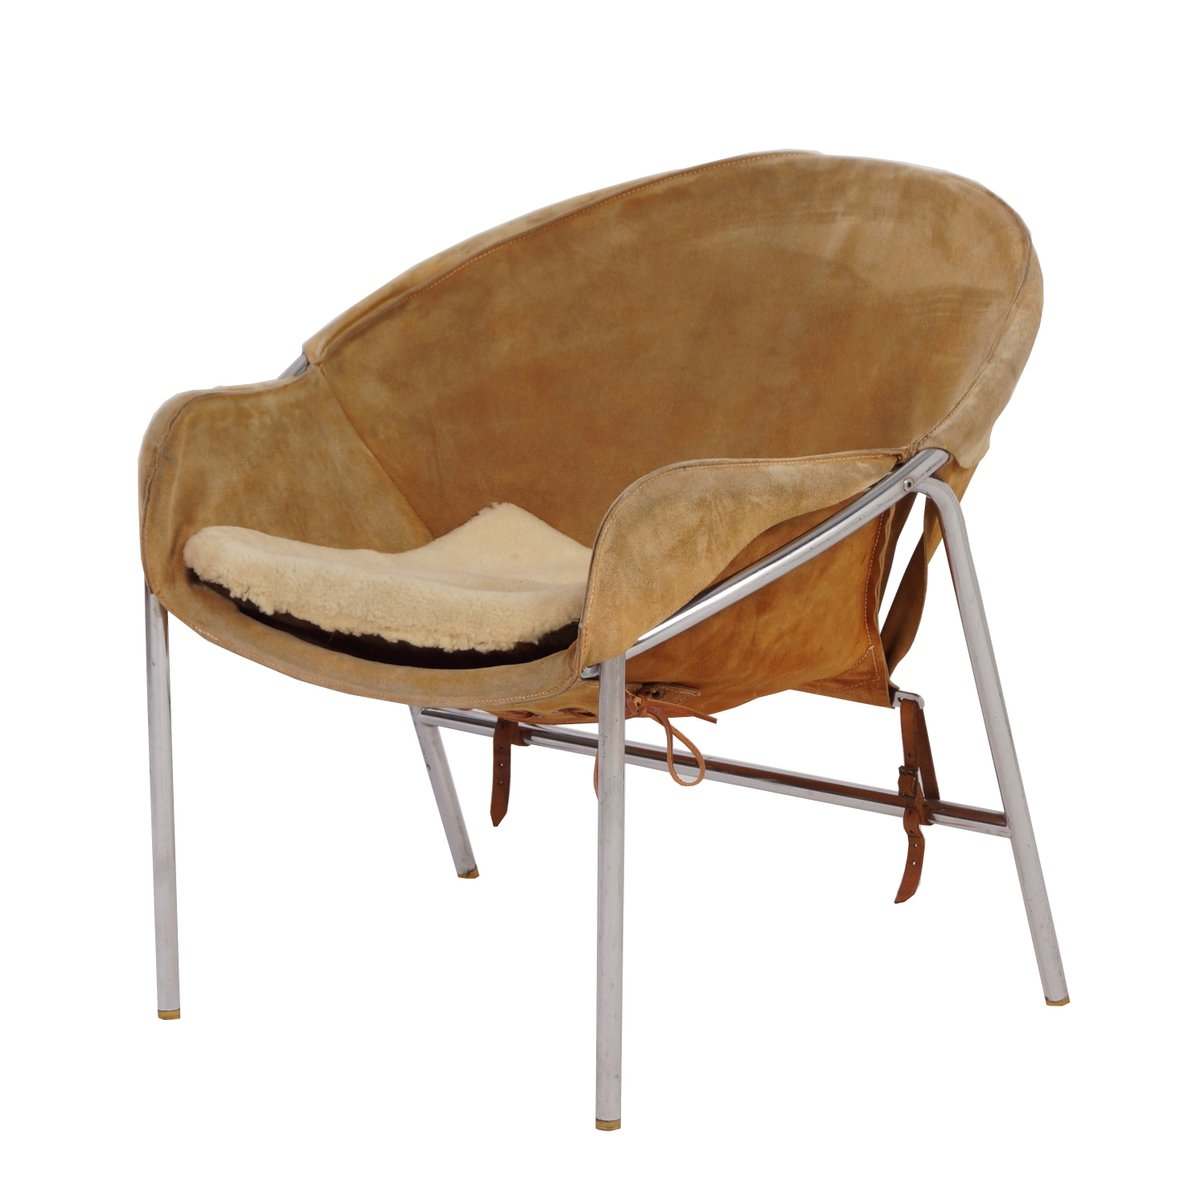 Light Brown Suede Sling Chair By Erik Jørgensen For Bovirke, 1950s